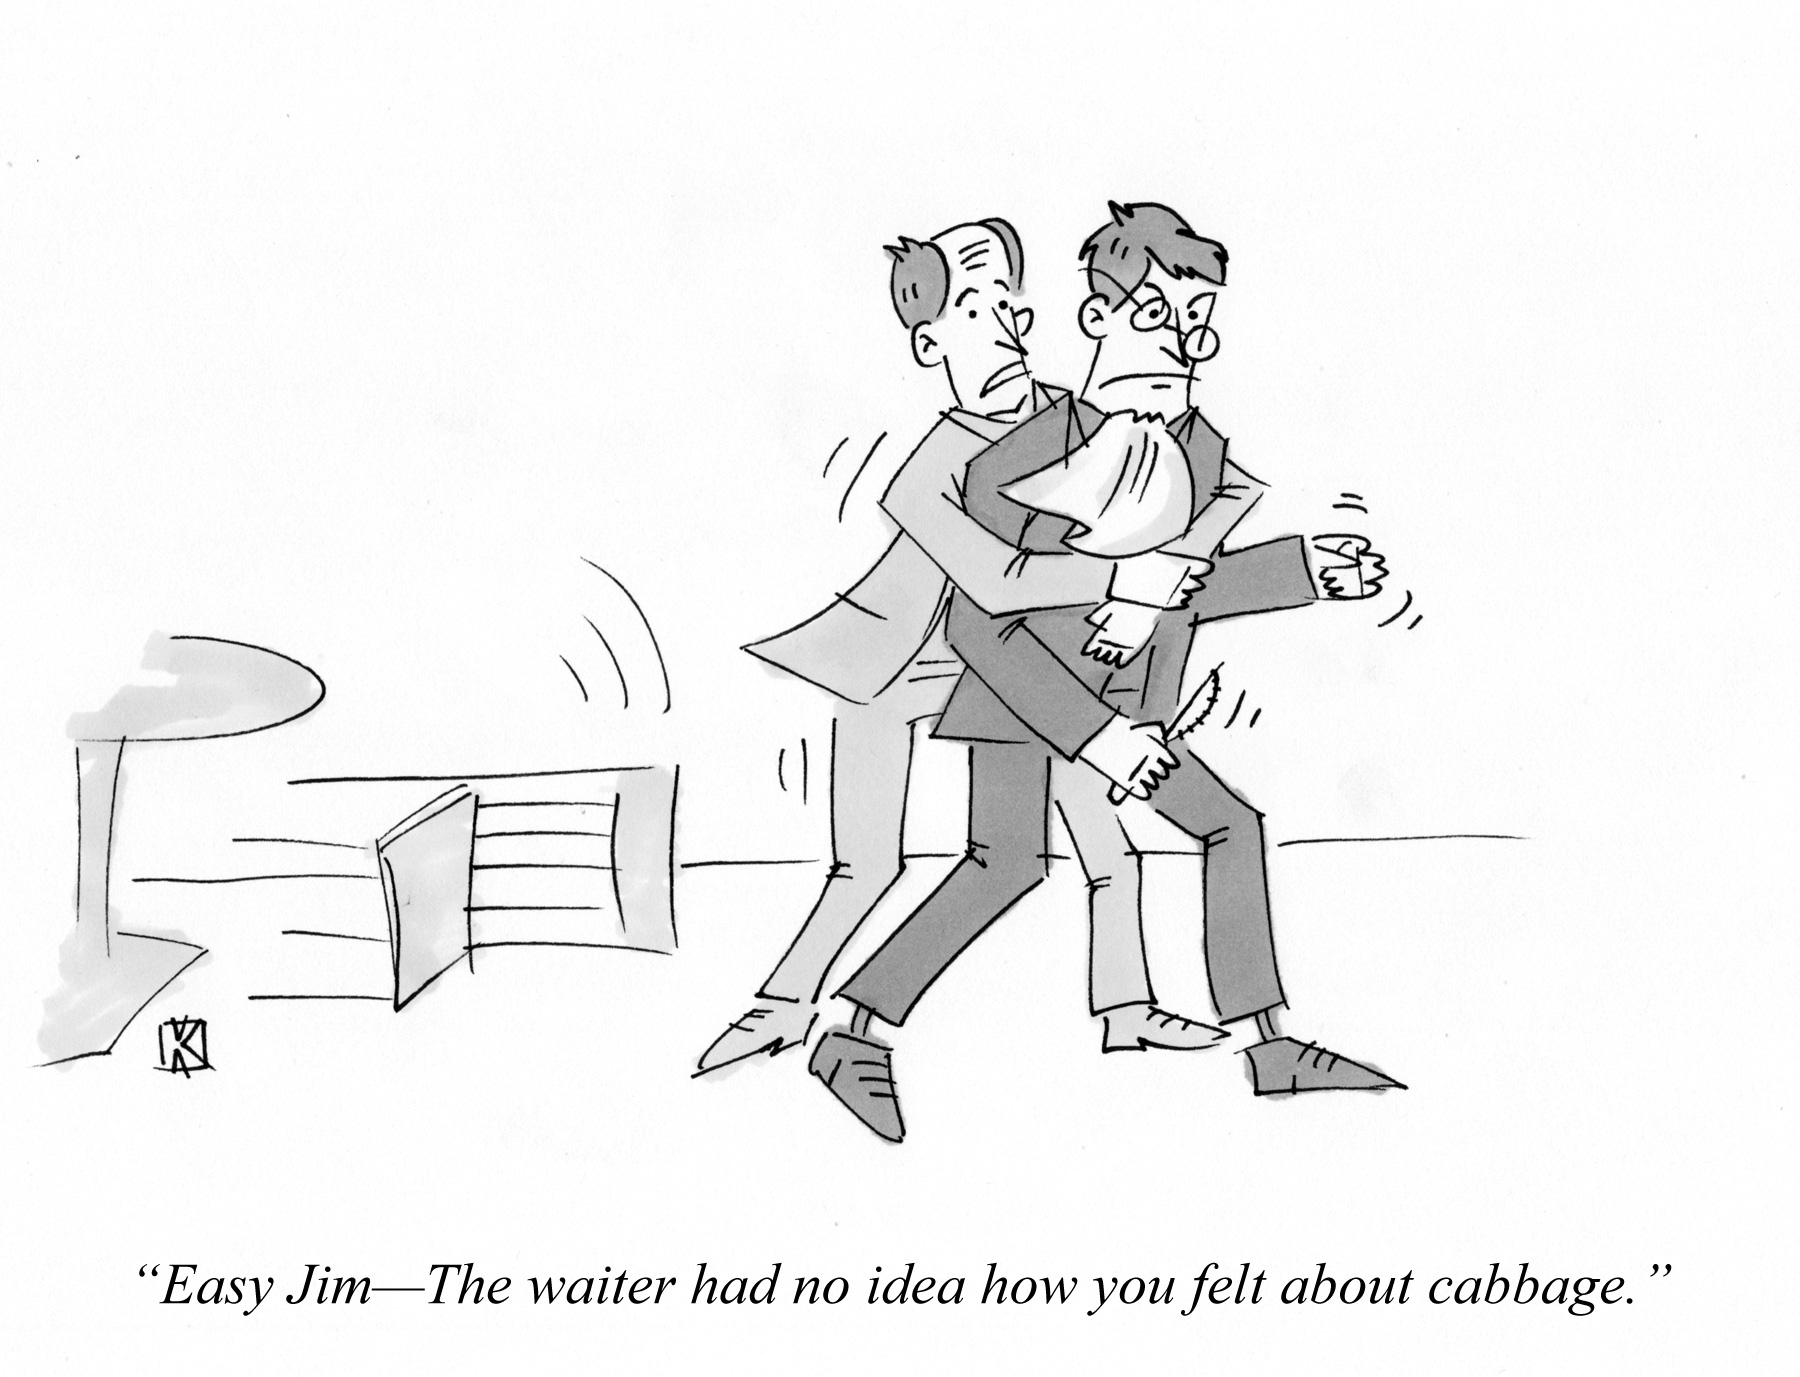 Easy Jim--The Waiter had no idea how you felt about cabbage.